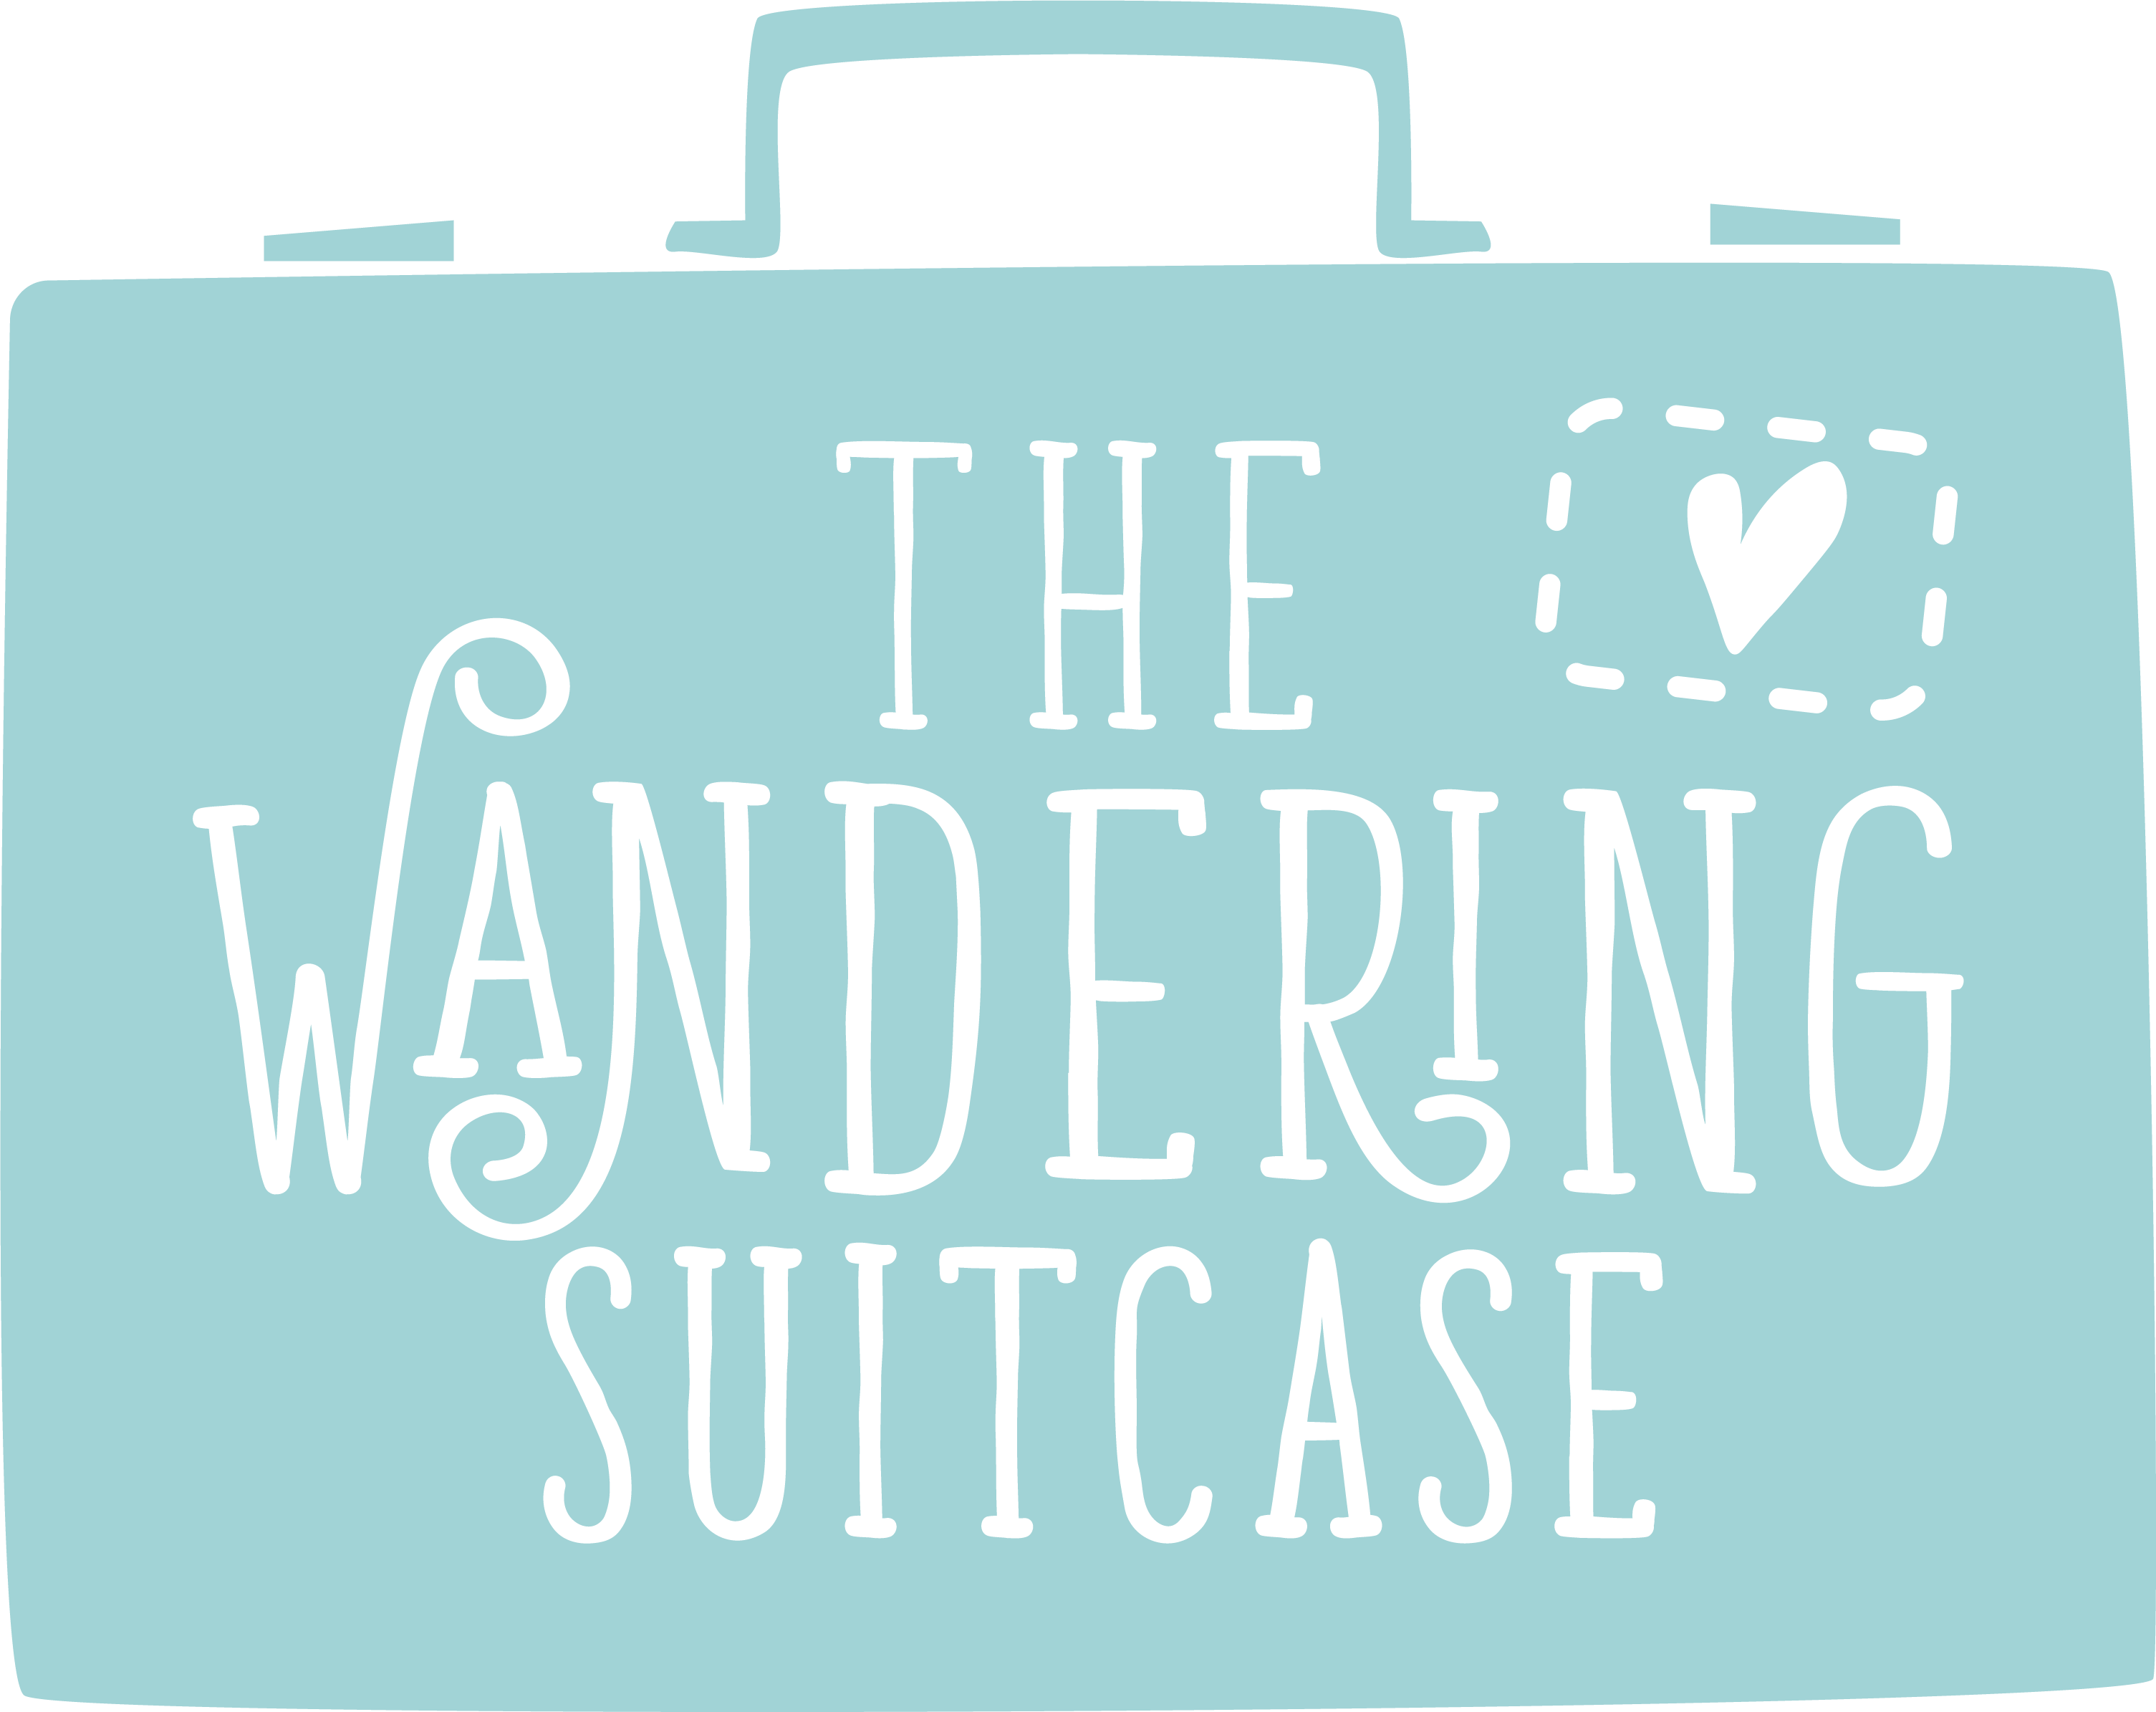 The Wandering Suitcase